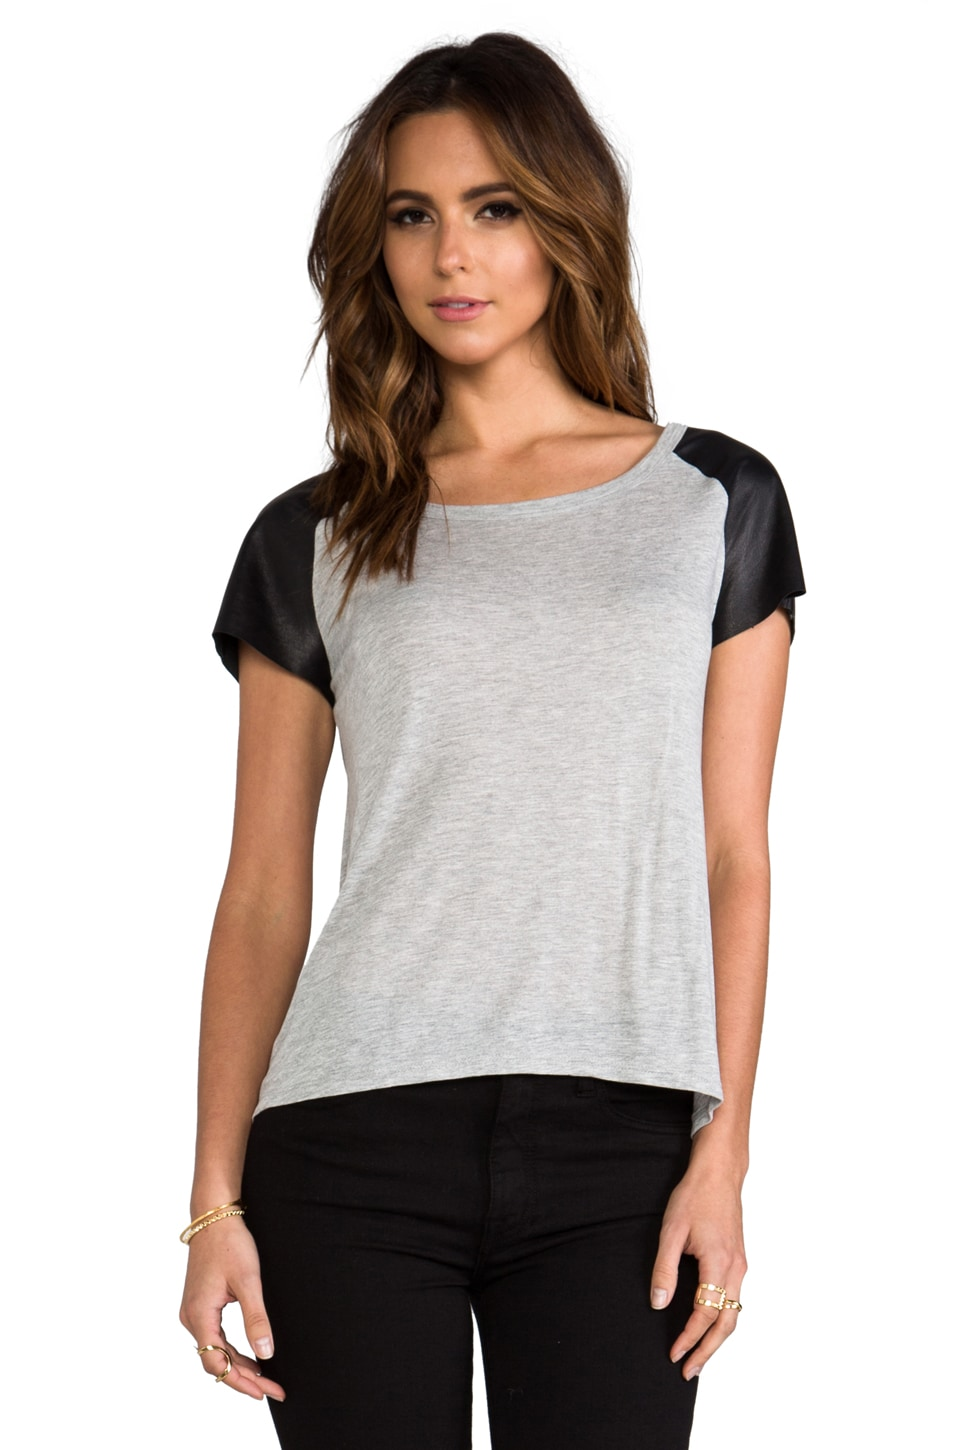 Enza Costa Leather Sleeve Raglan Tee in Heather Grey & Black